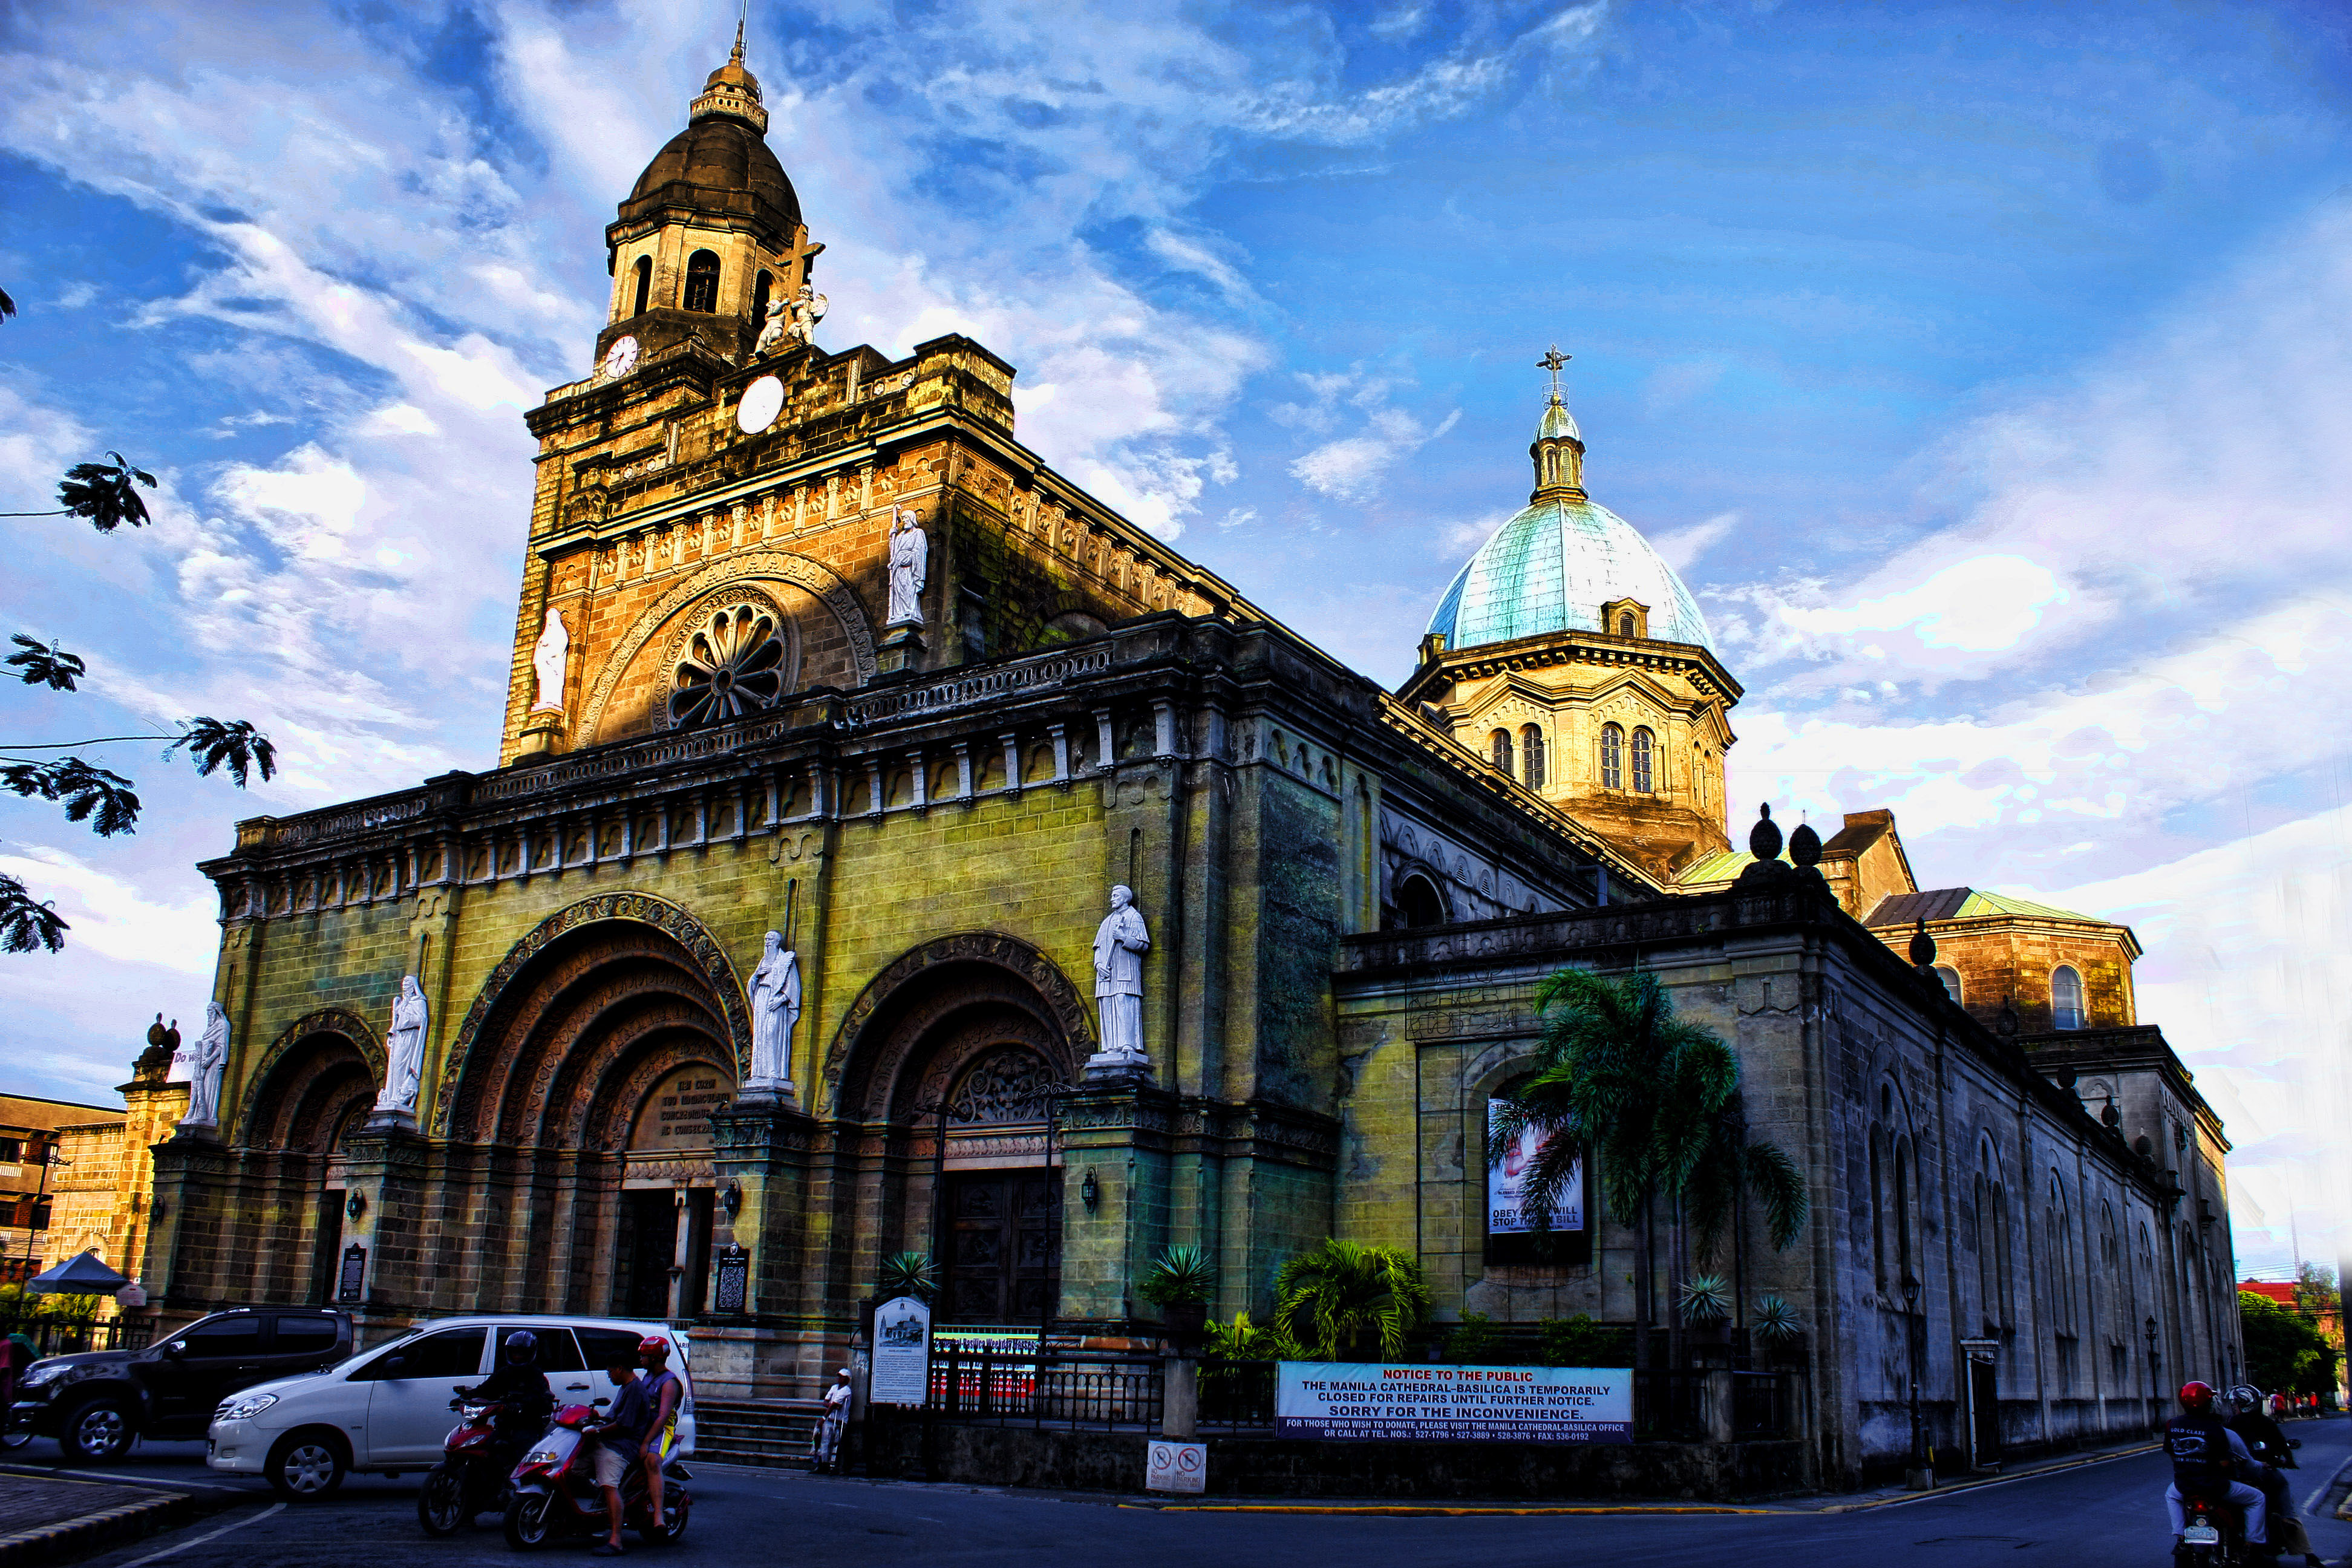 brief history of manila Intramuros: good brief history of manila - see 2,934 traveler reviews, 2,182 candid photos, and great deals for manila, philippines, at tripadvisor.